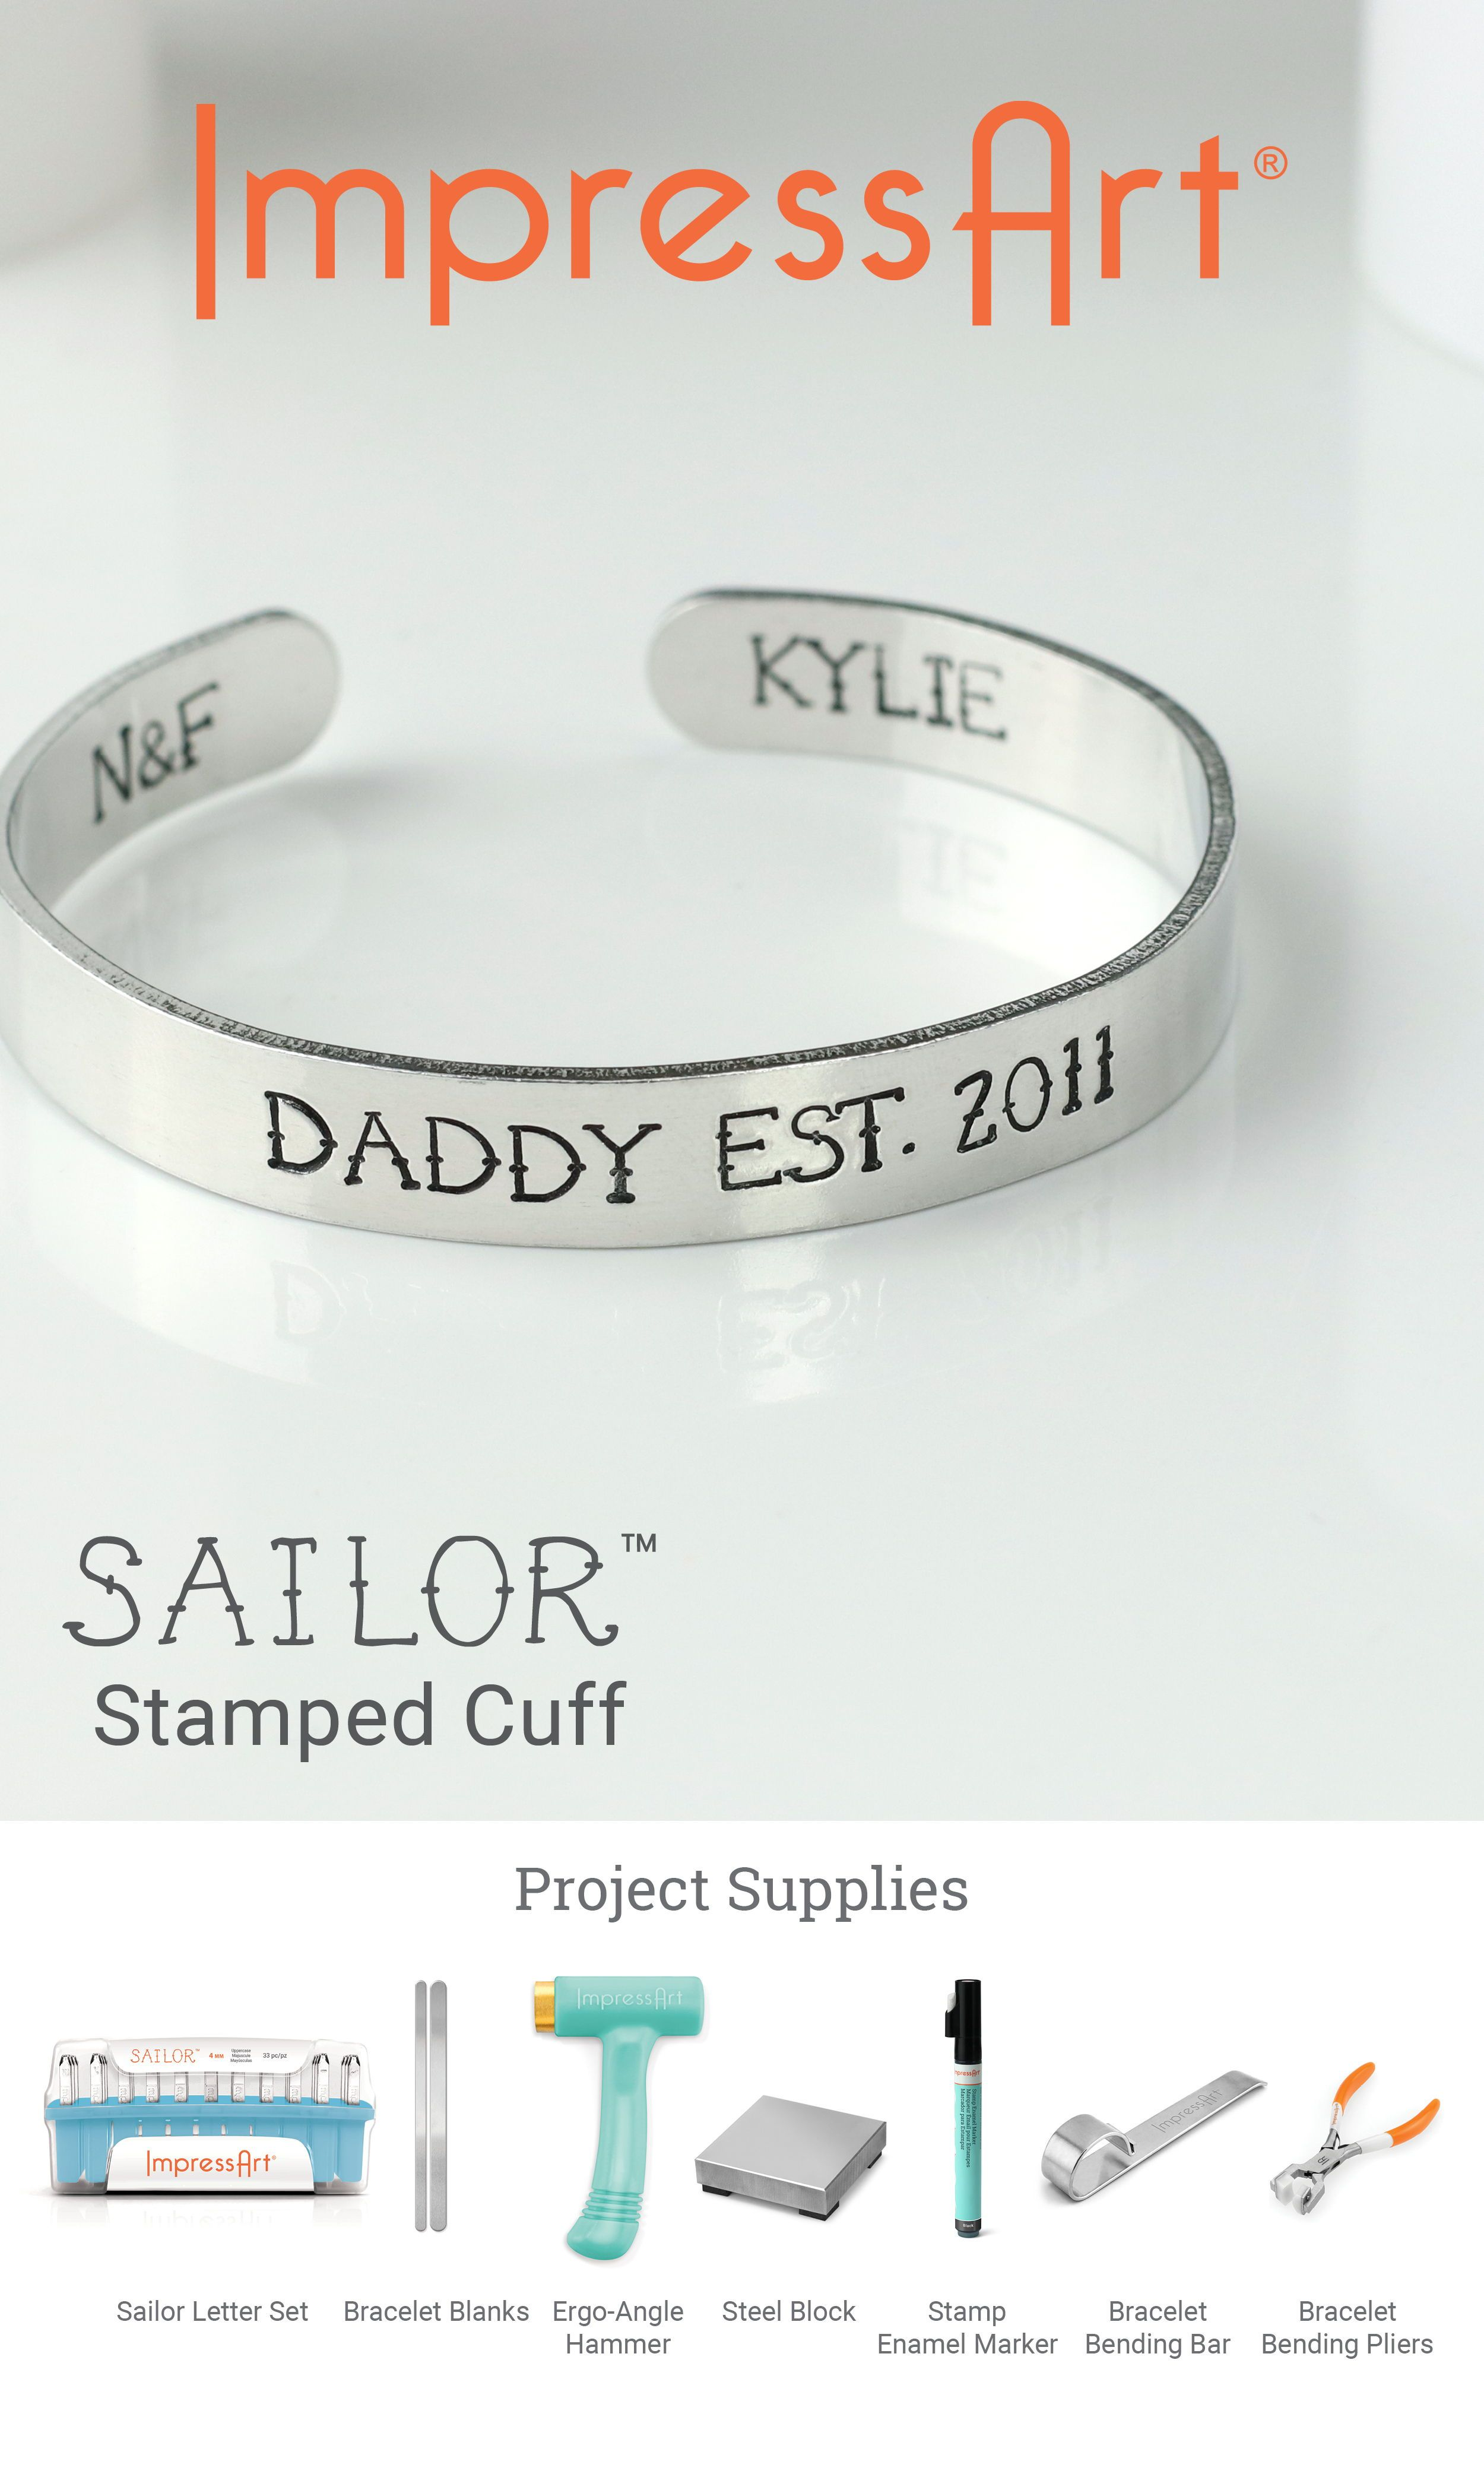 Sailor Metal Stamp Font Makes For Great Diy Bracelets And Other Creative Jewelry Stamping Ideas Jewelrymak Metal Stamped Jewelry Metal Stamping Diy Bracelets